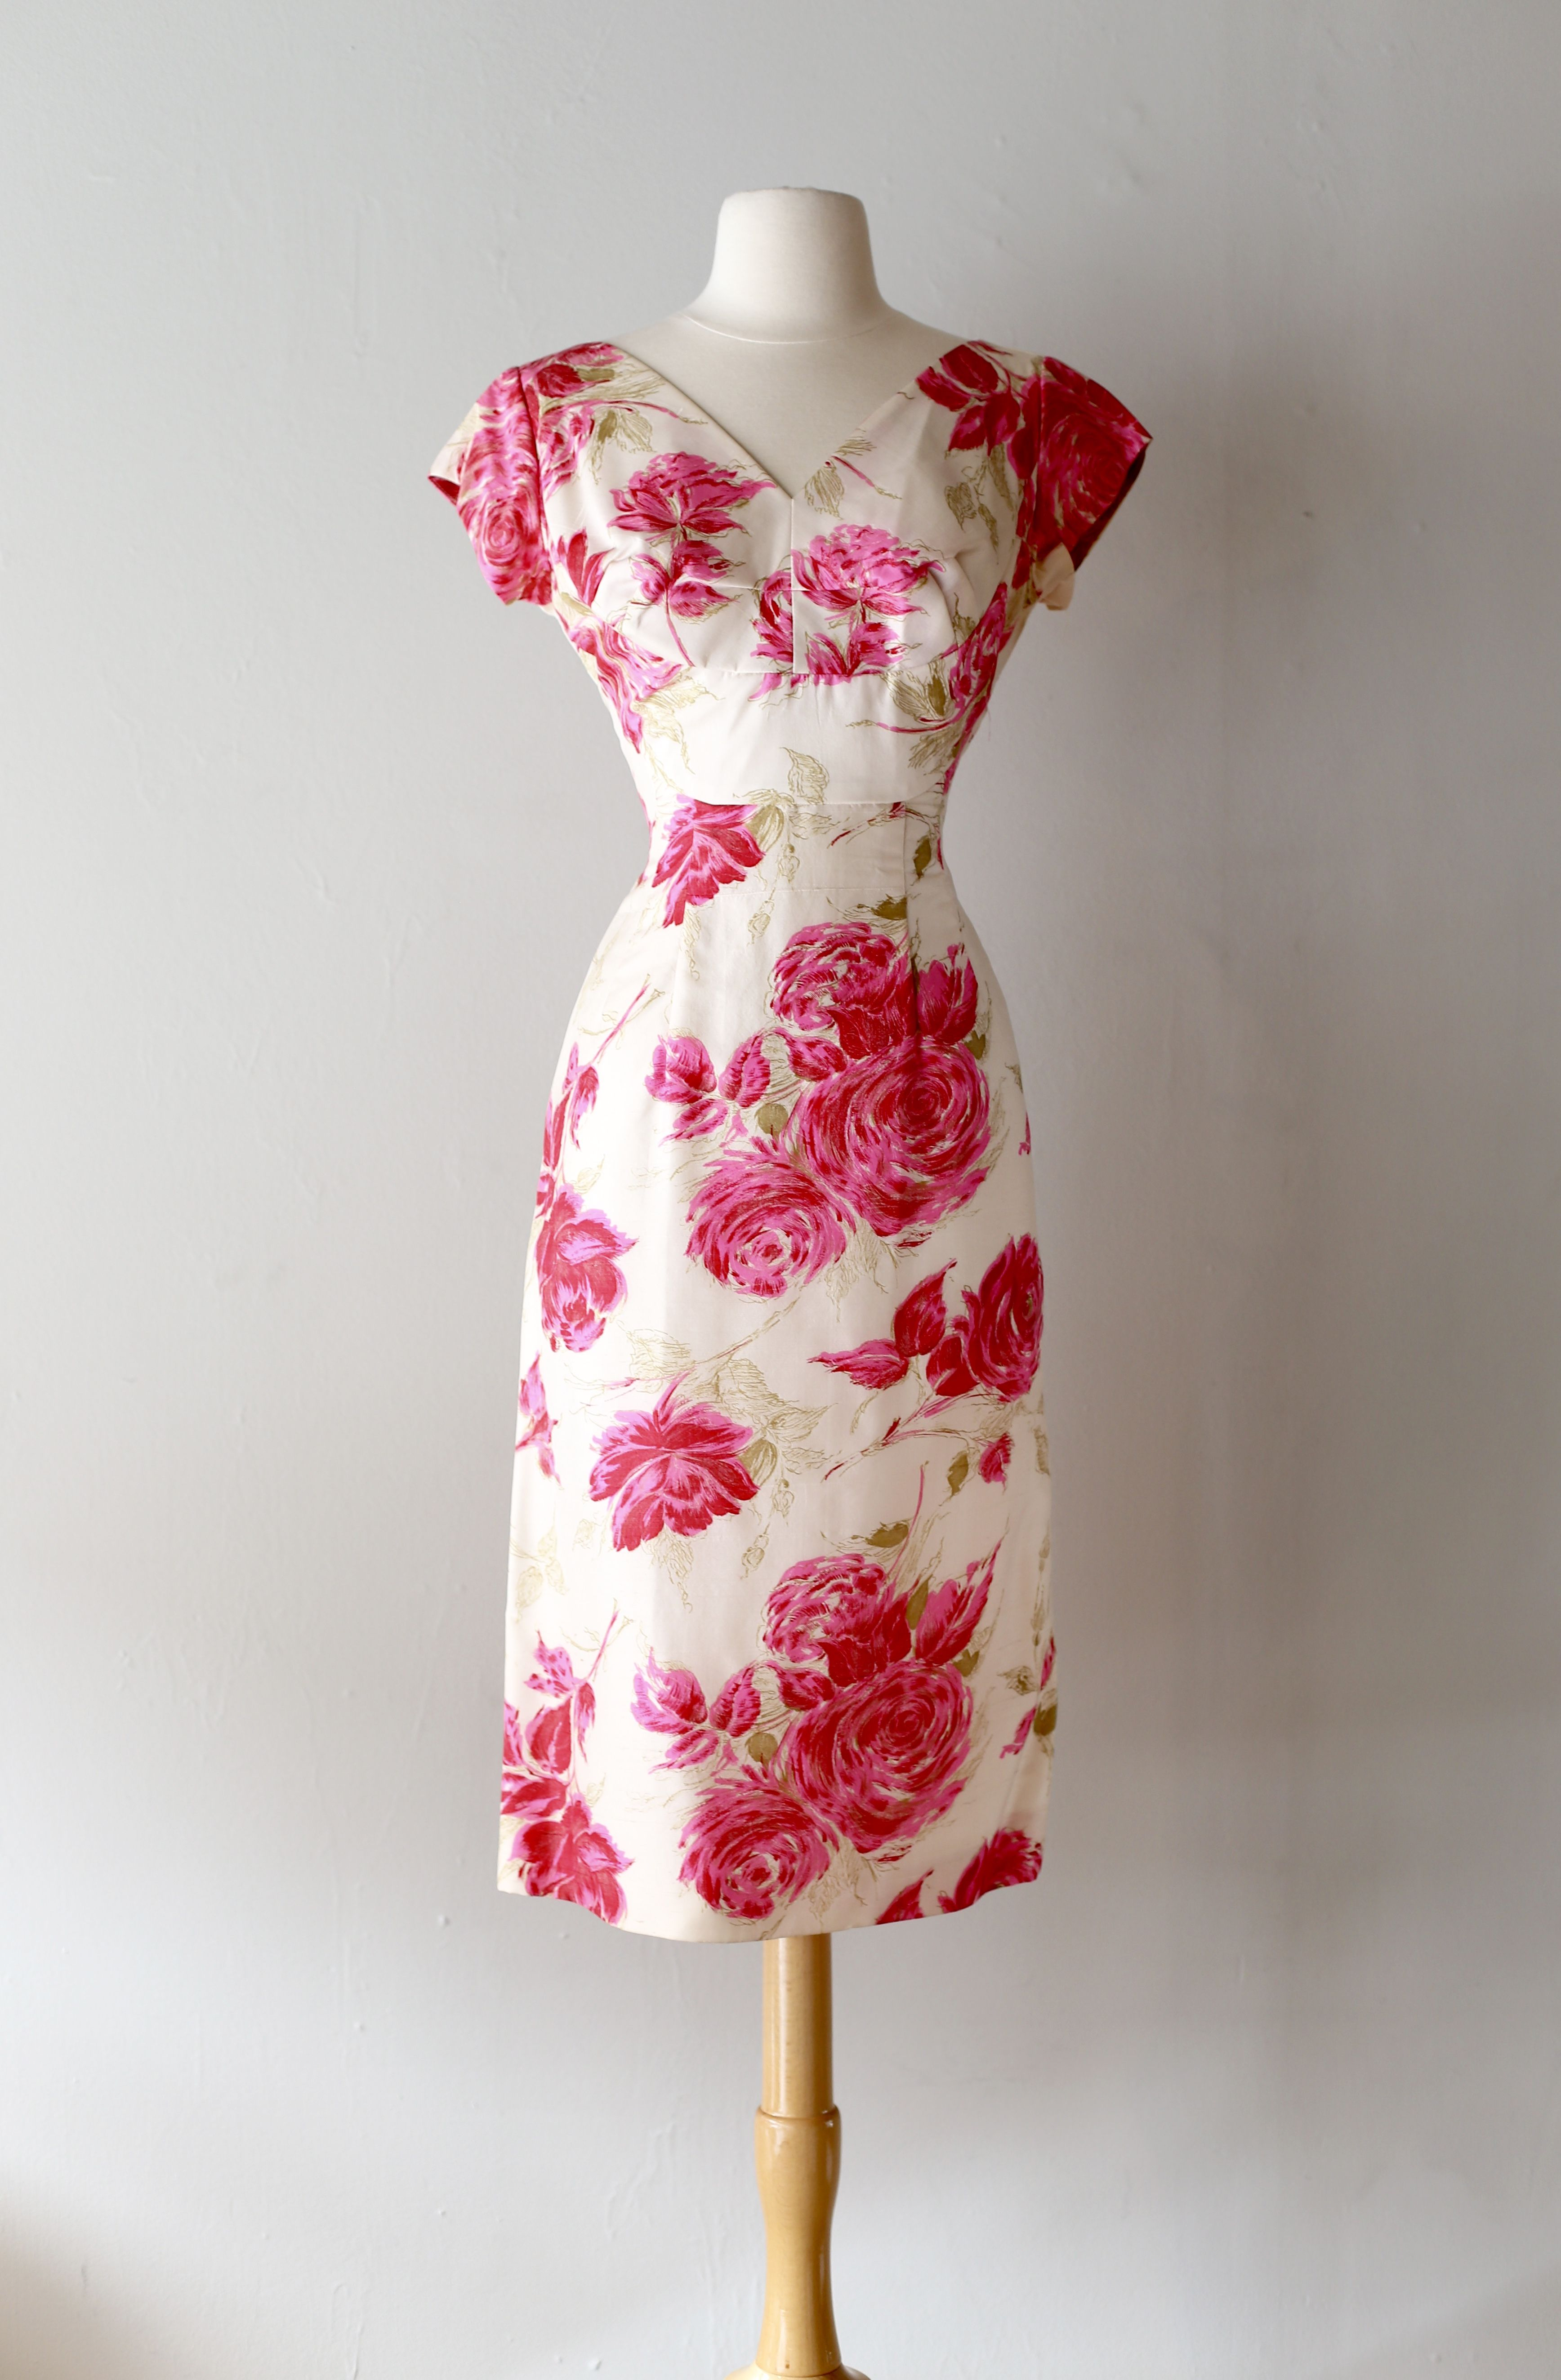 1950's silk rose print wiggle dress at Xtabay Vintage. By Molly Modes.